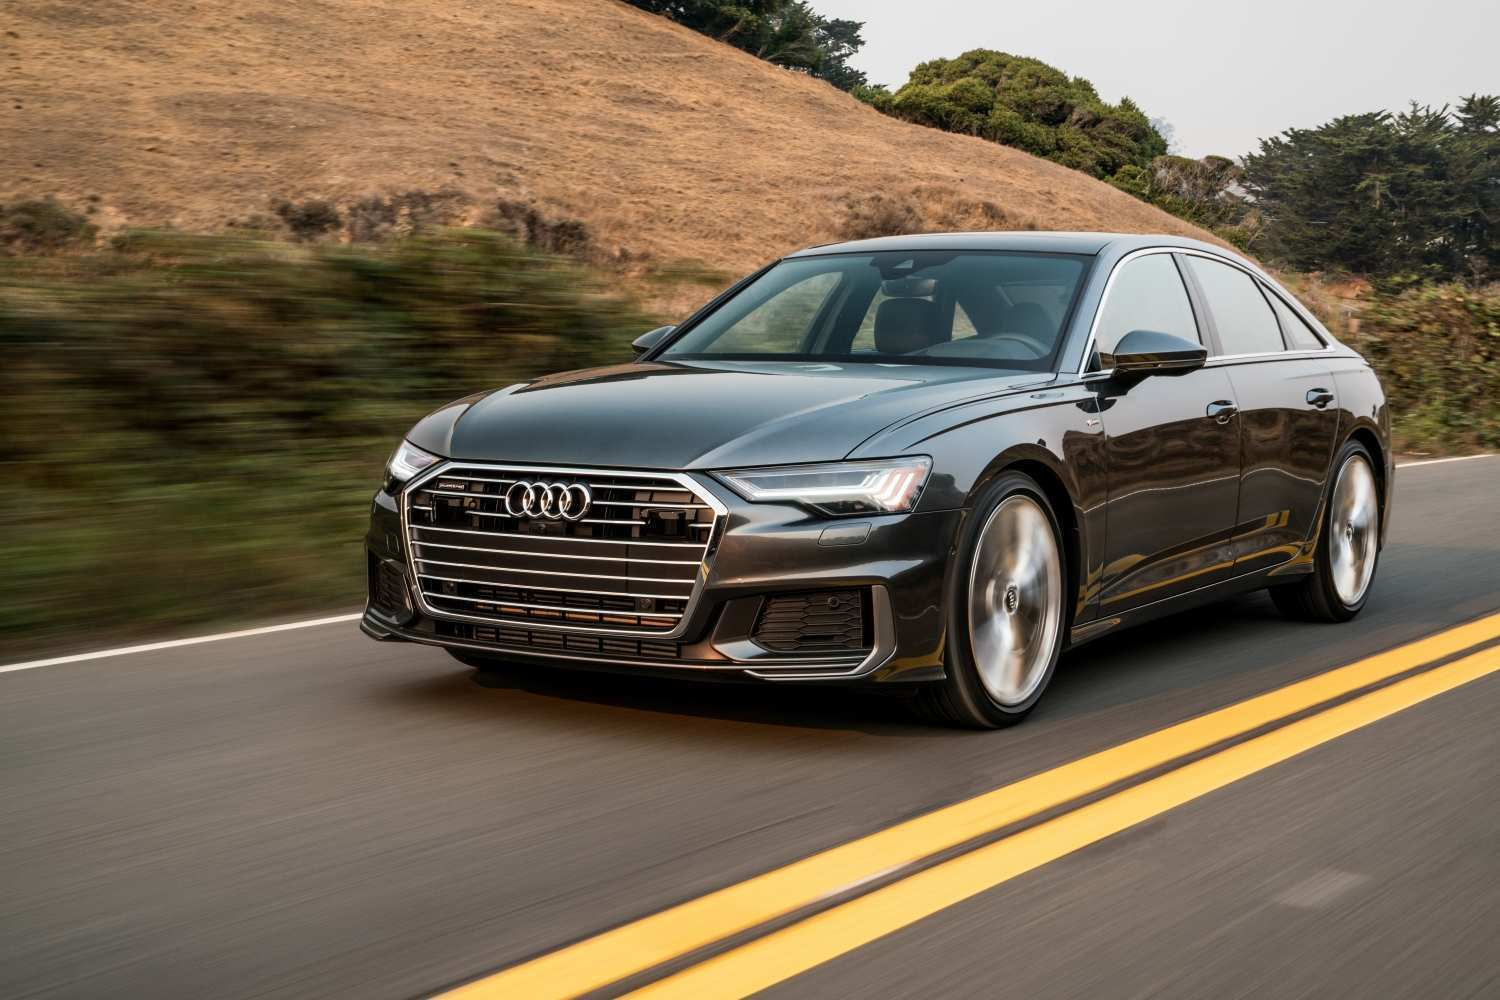 88 The Audi A6 2019 Geneva Review Rumors for Audi A6 2019 Geneva Review